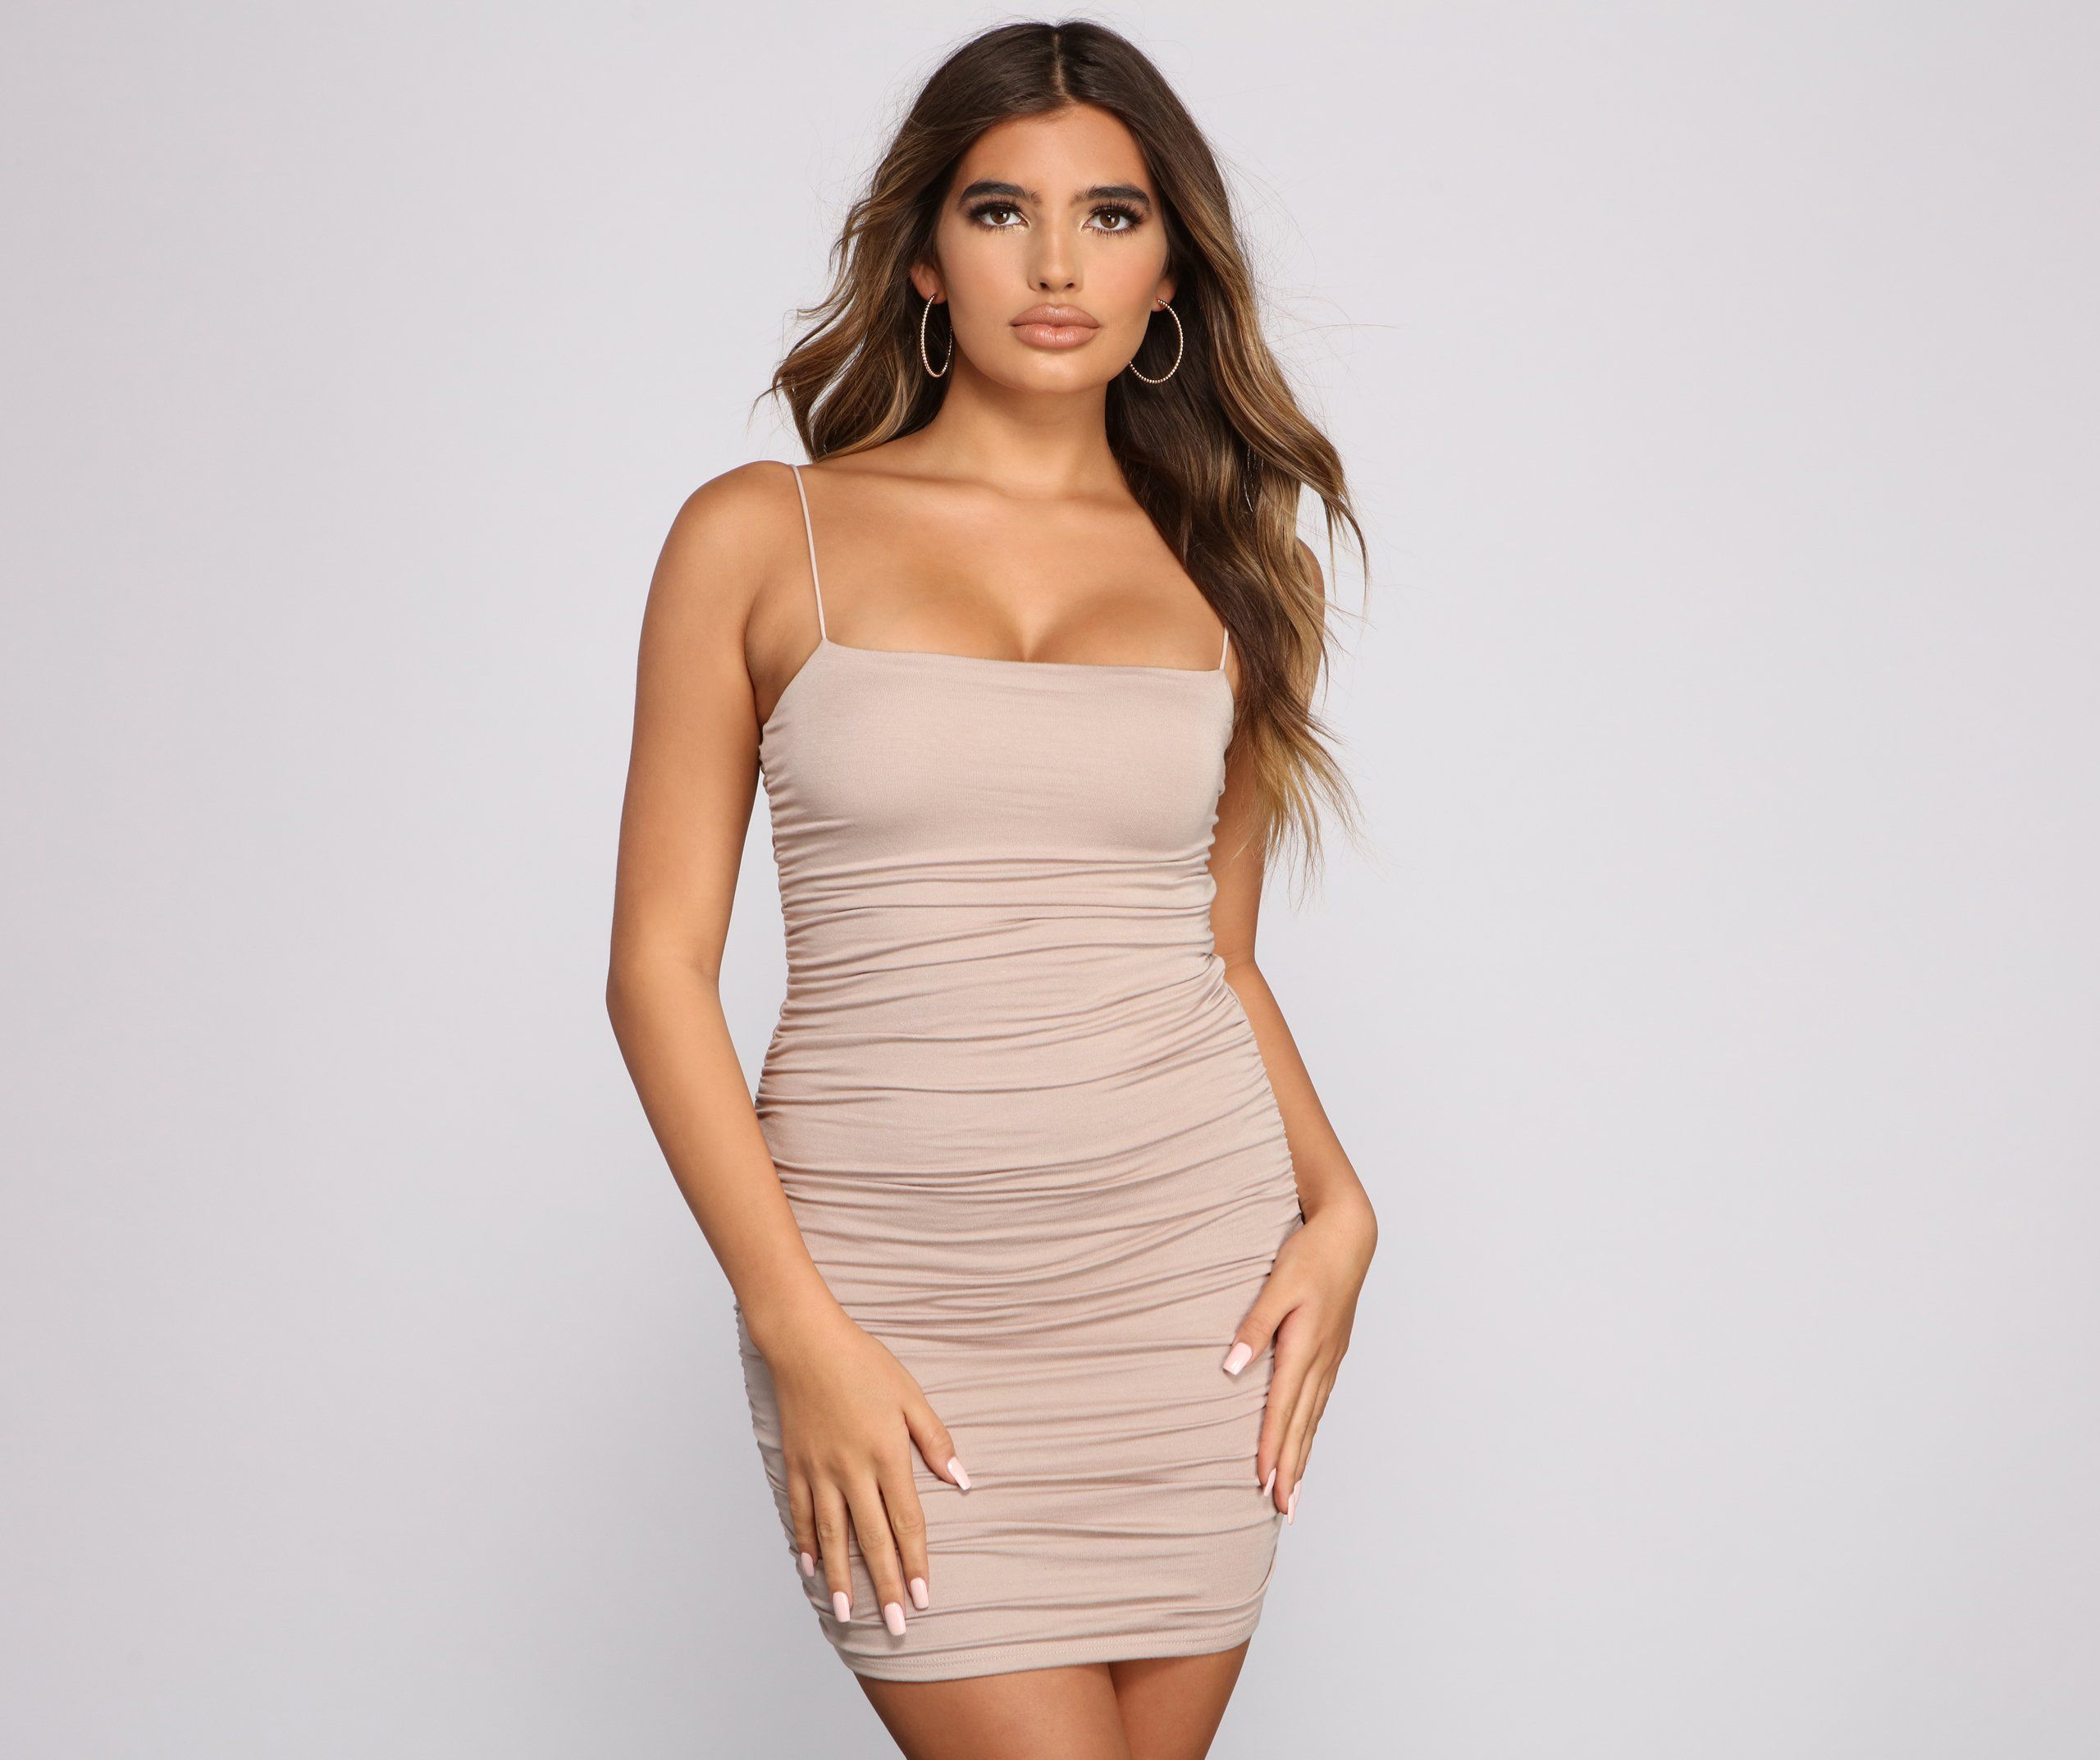 Casually Slay Square Neck Ruched Mini Dress In 2021 Mini Dress Ruched Dress Dresses [ 2145 x 2560 Pixel ]